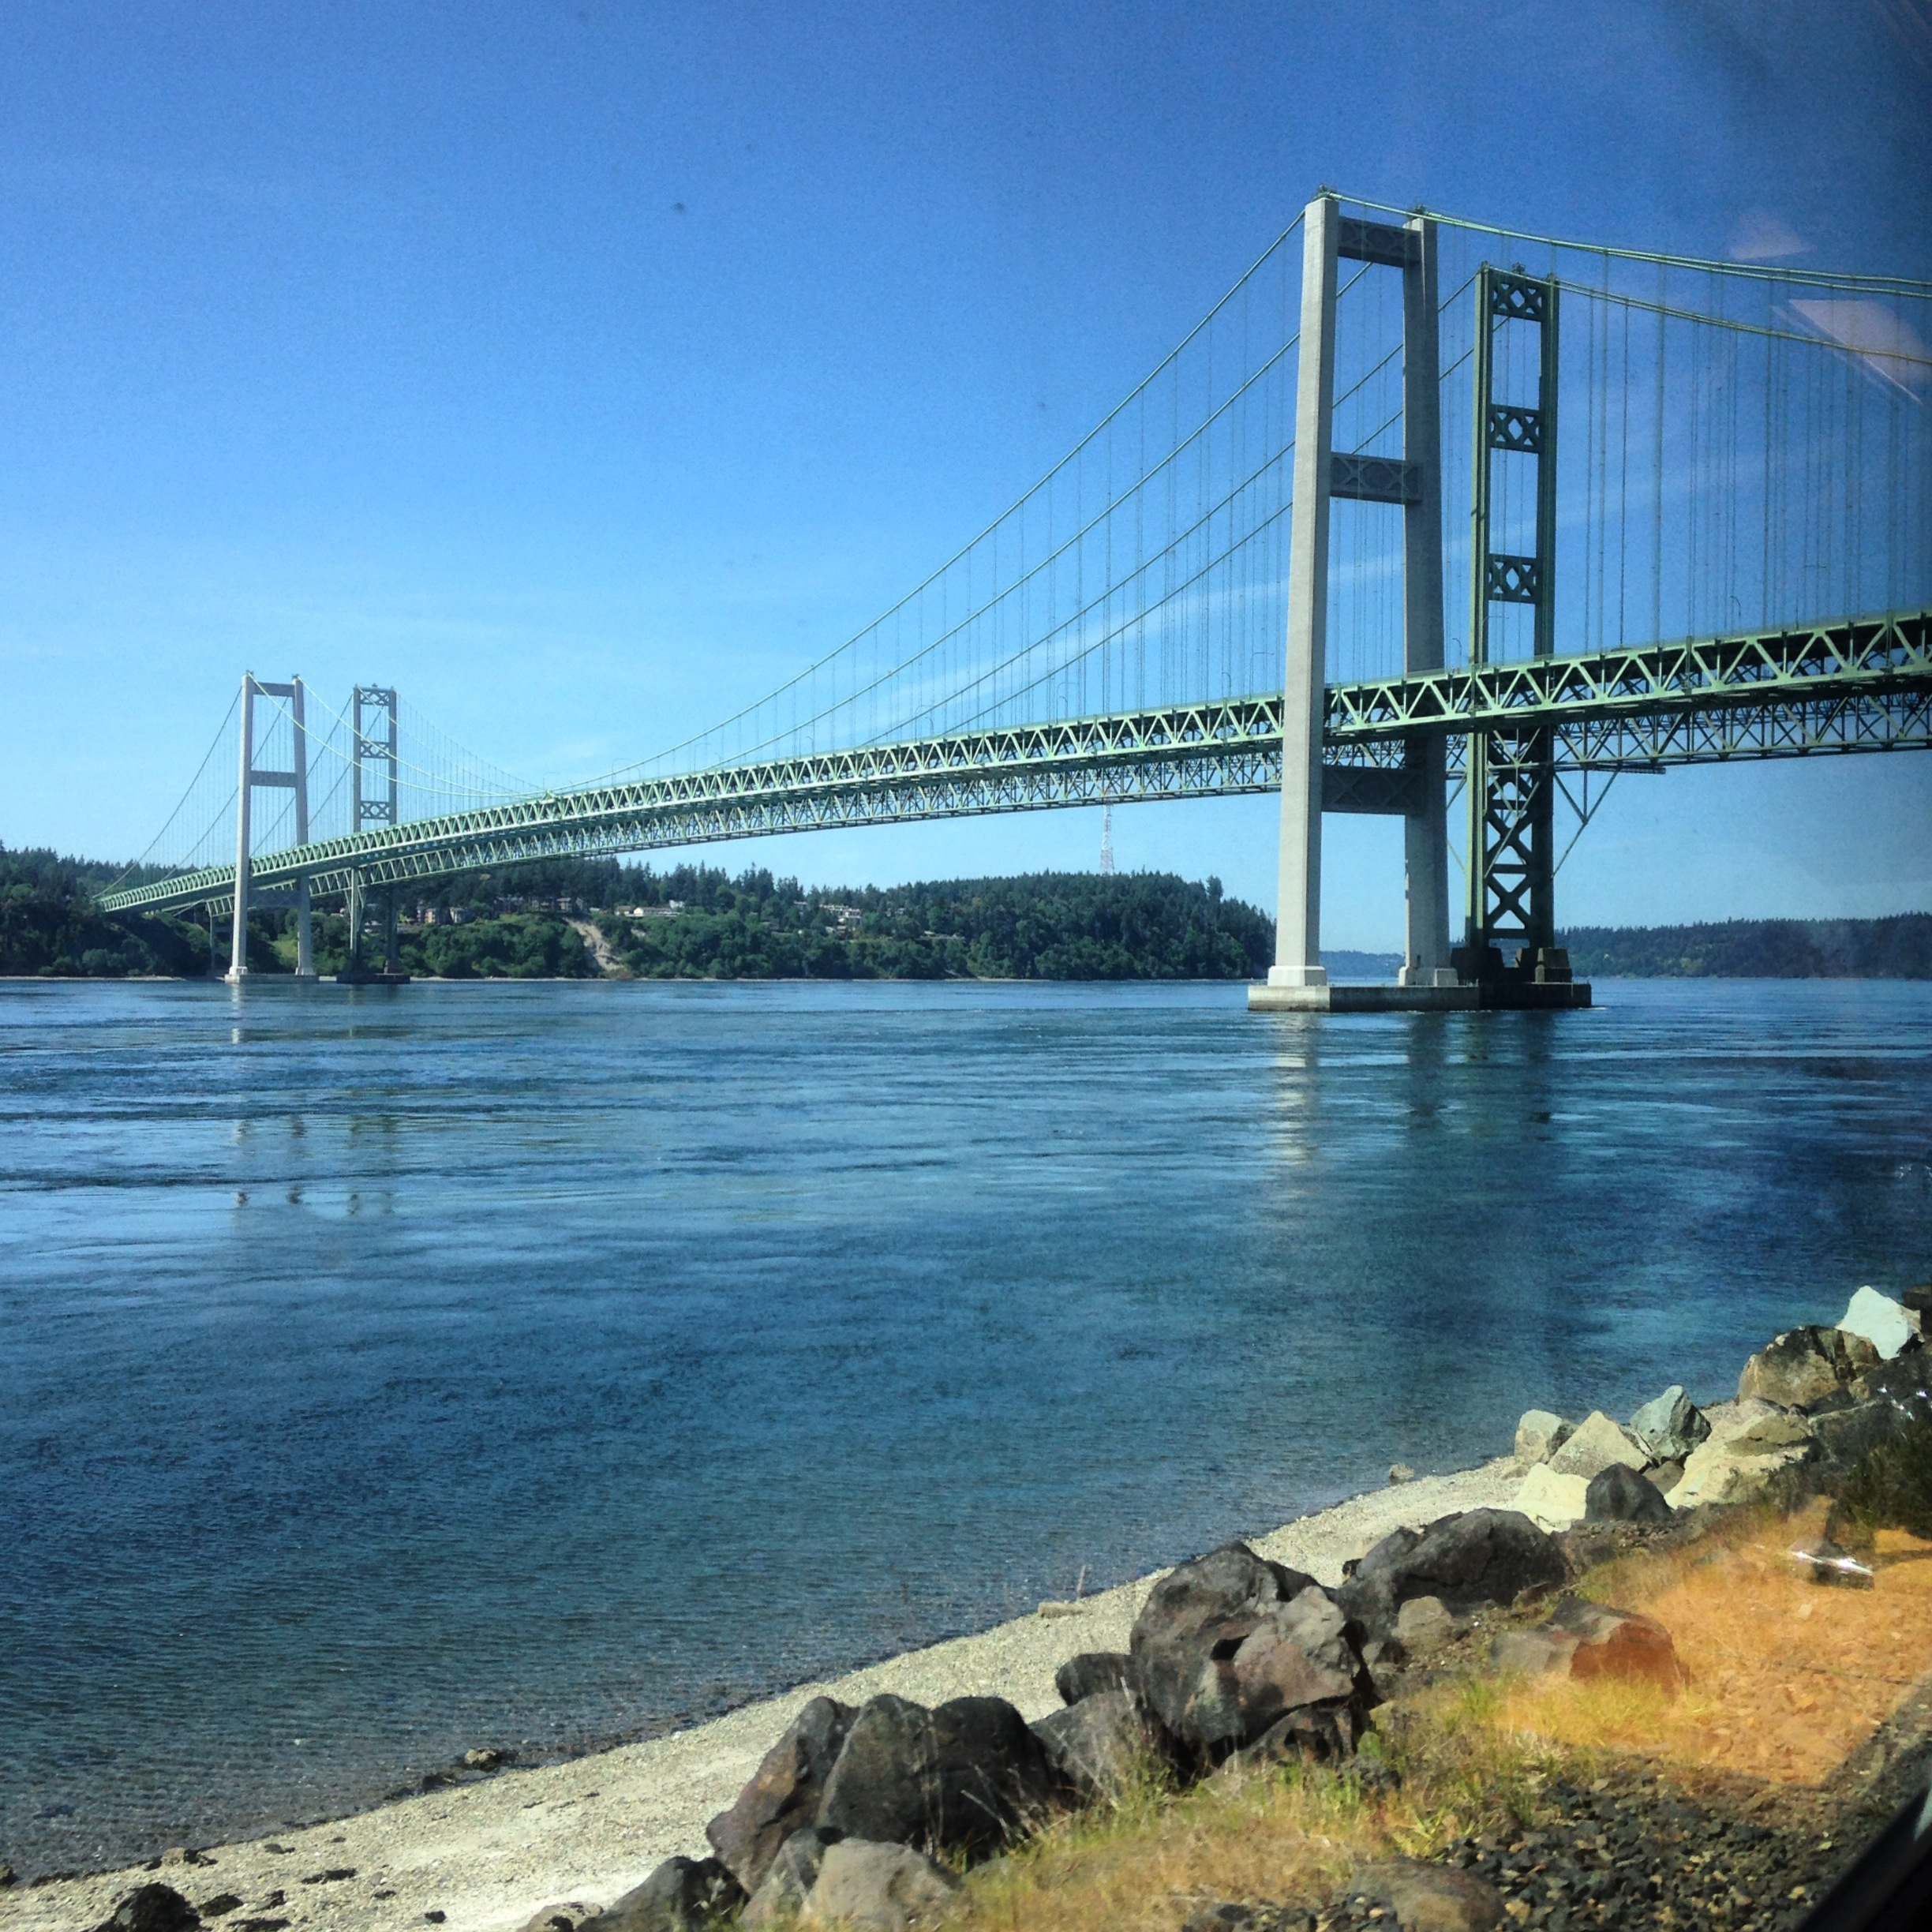 Do It Right. (Tacoma Narrows Bridge, by RustyObjects {Own work} [CC BY-SA 3.0 {http://creativecommons.org/licenses/by-sa/3.0}], via Wikimedia Commons)